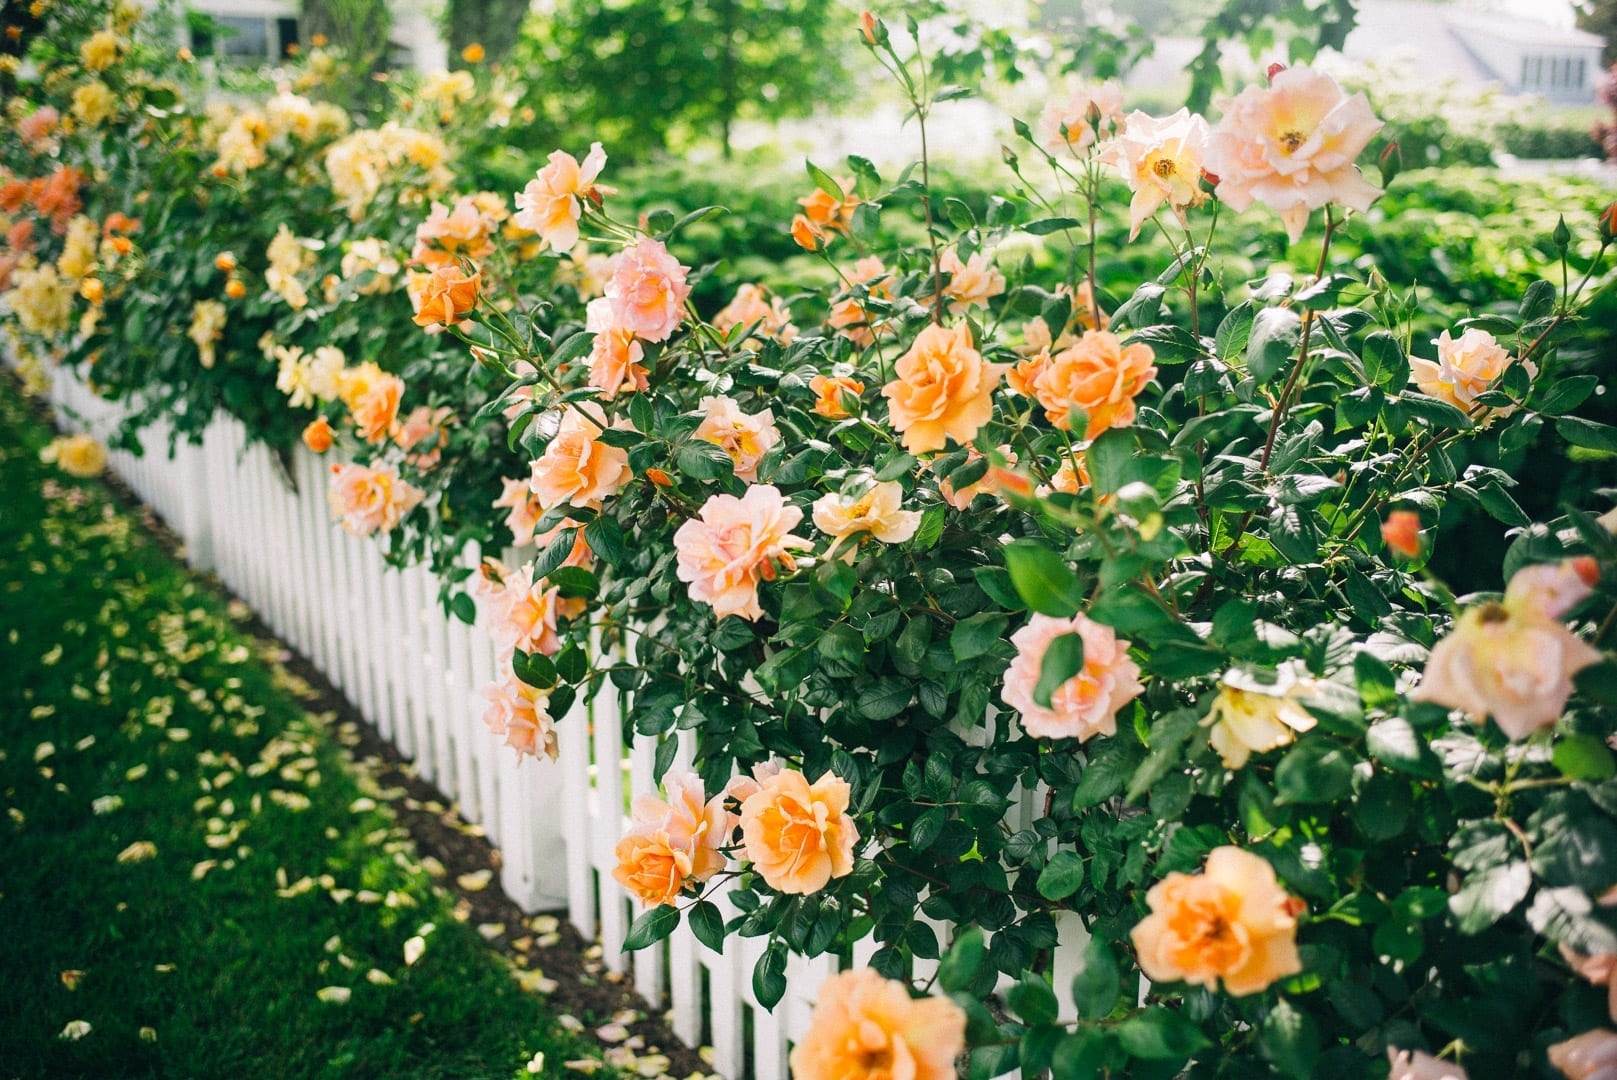 Martha's Vineyard Guide - Pink and orange flowers on Martha's vineyard